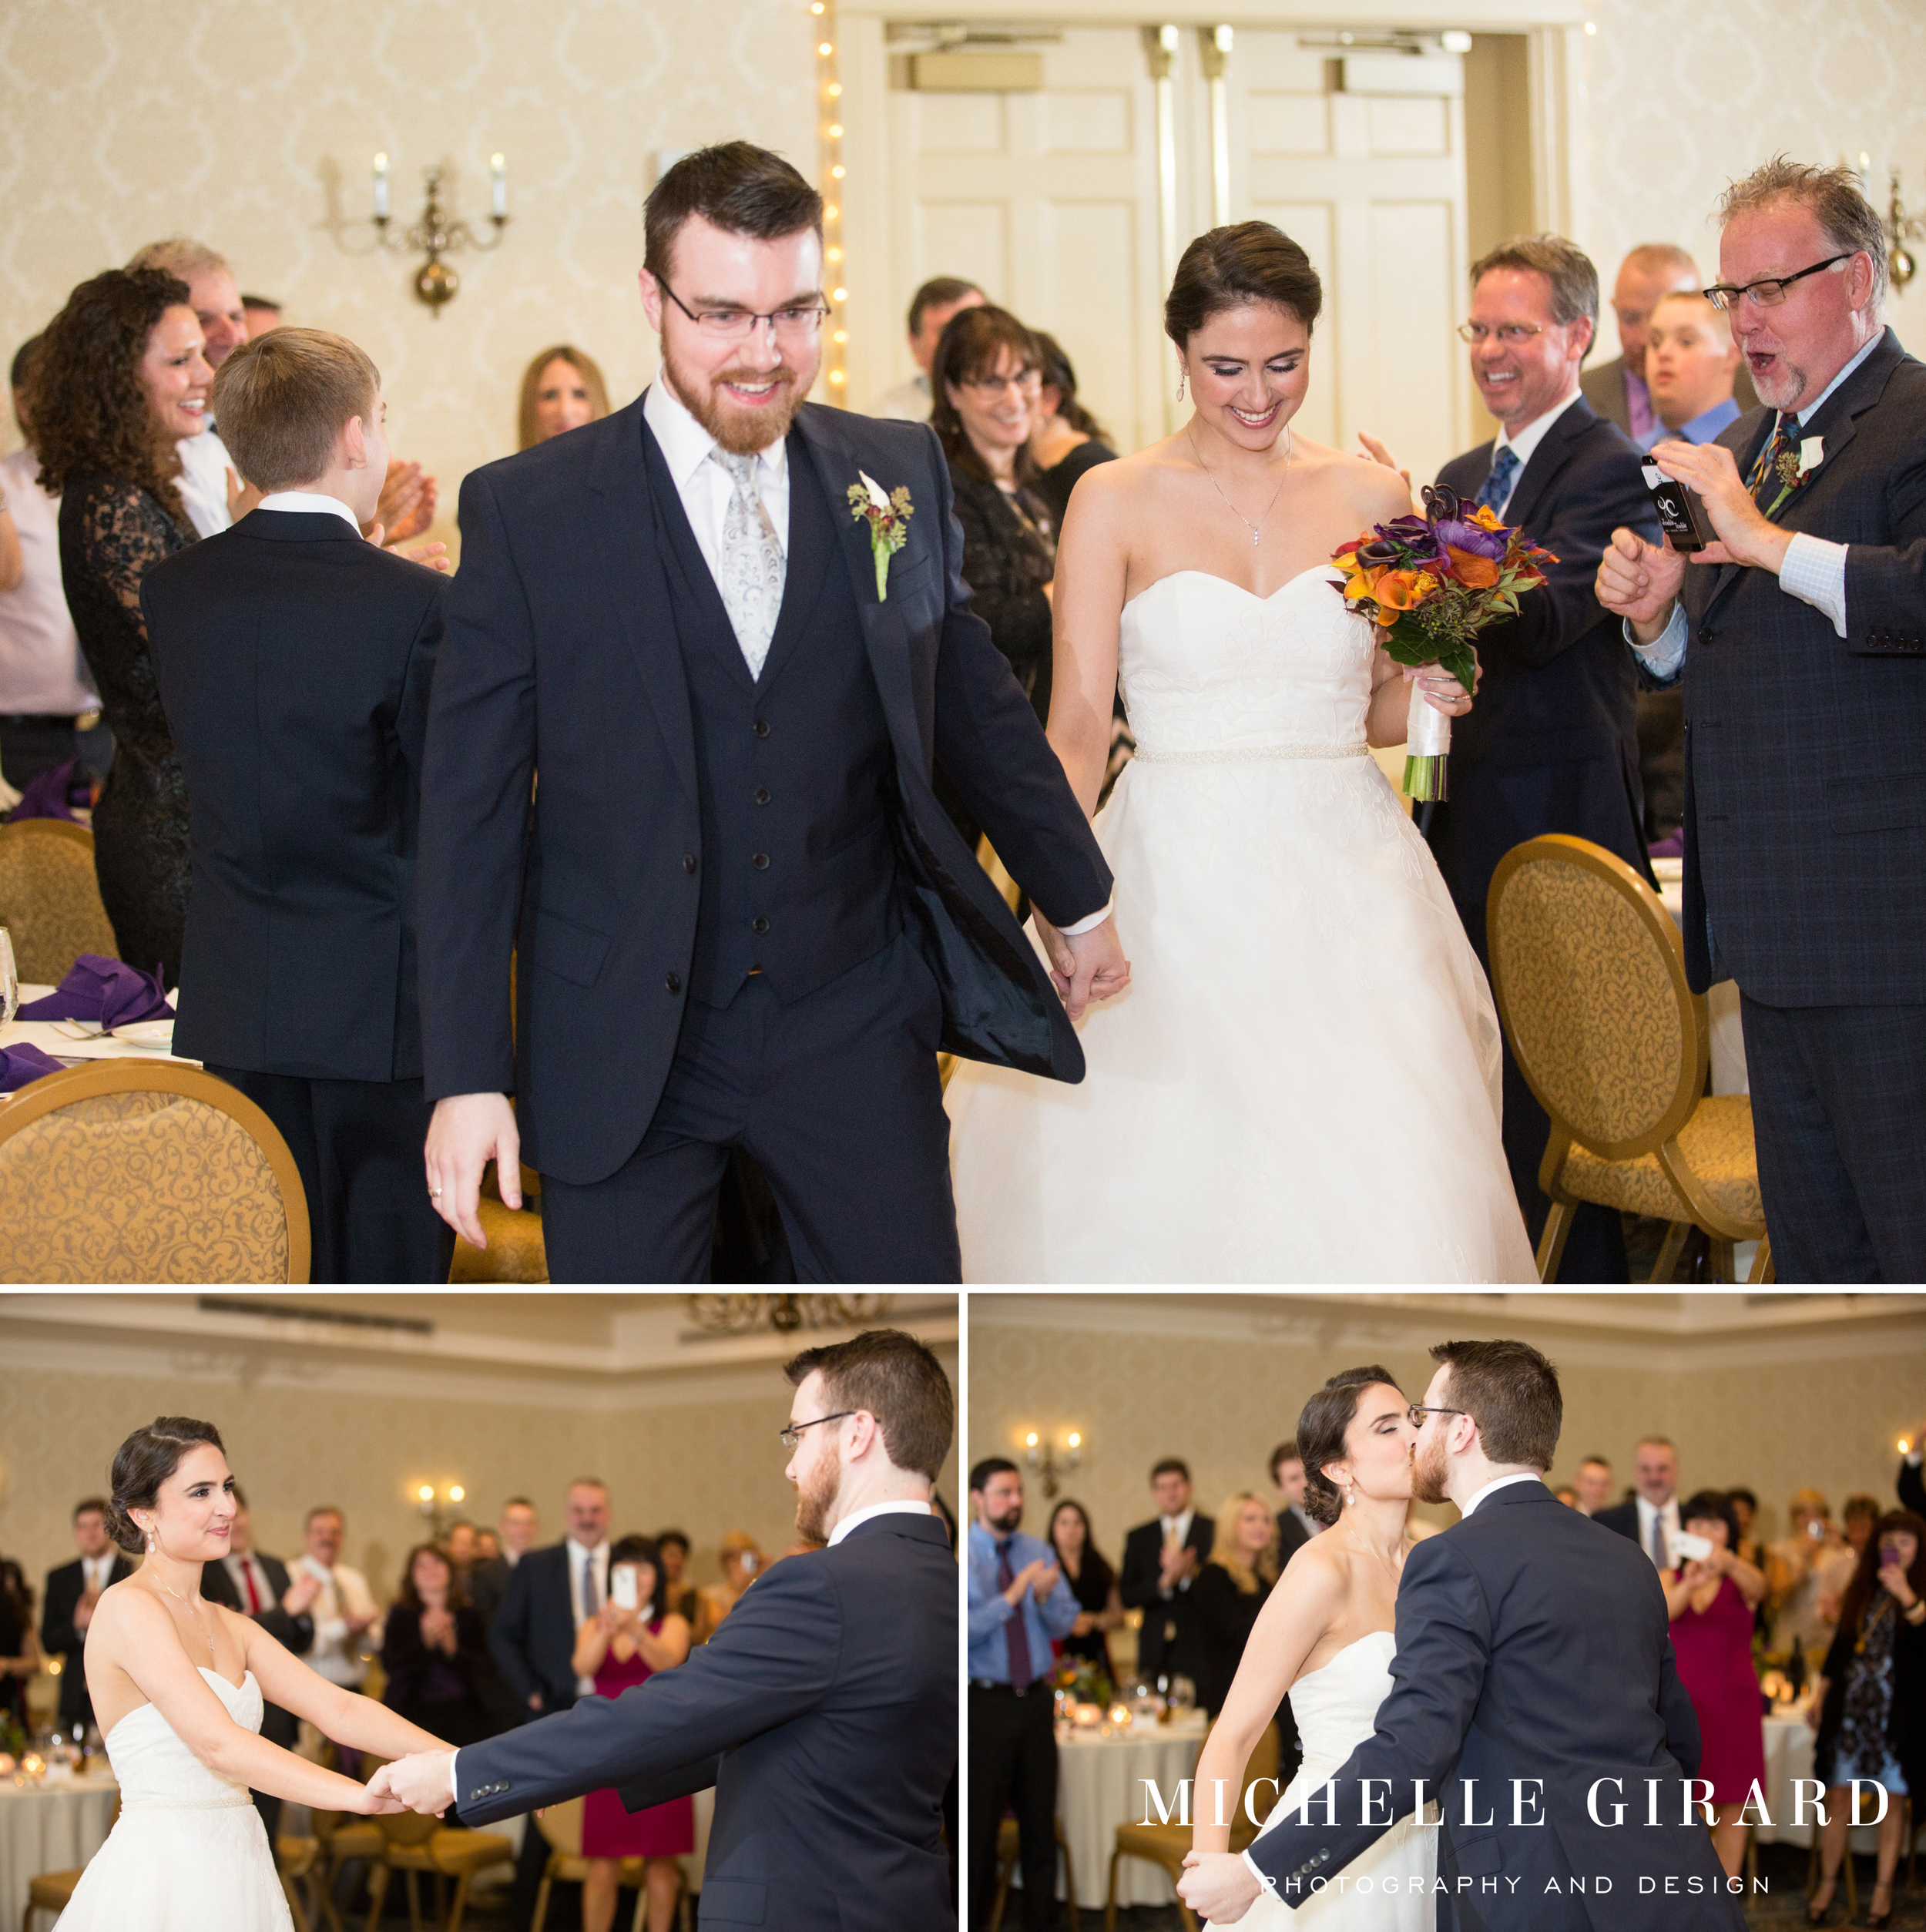 LordJefferyInnWedding_AmherstMa_MichelleGirardPhotography38.jpg